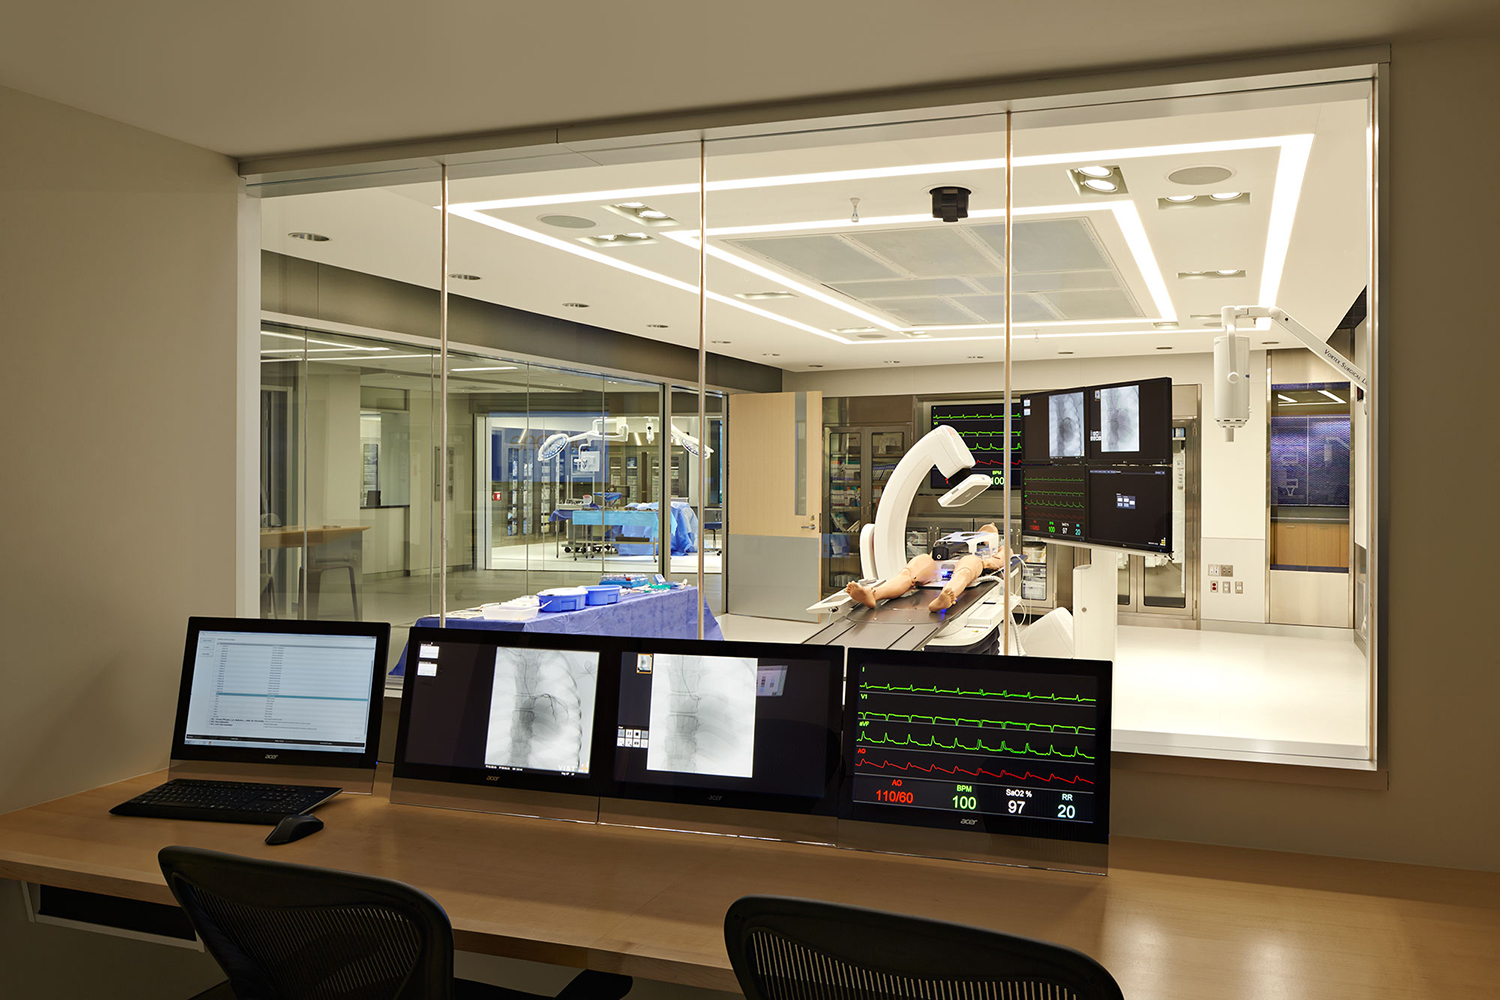 Mdco medical simulation center bsa design awards for Interior design simulator